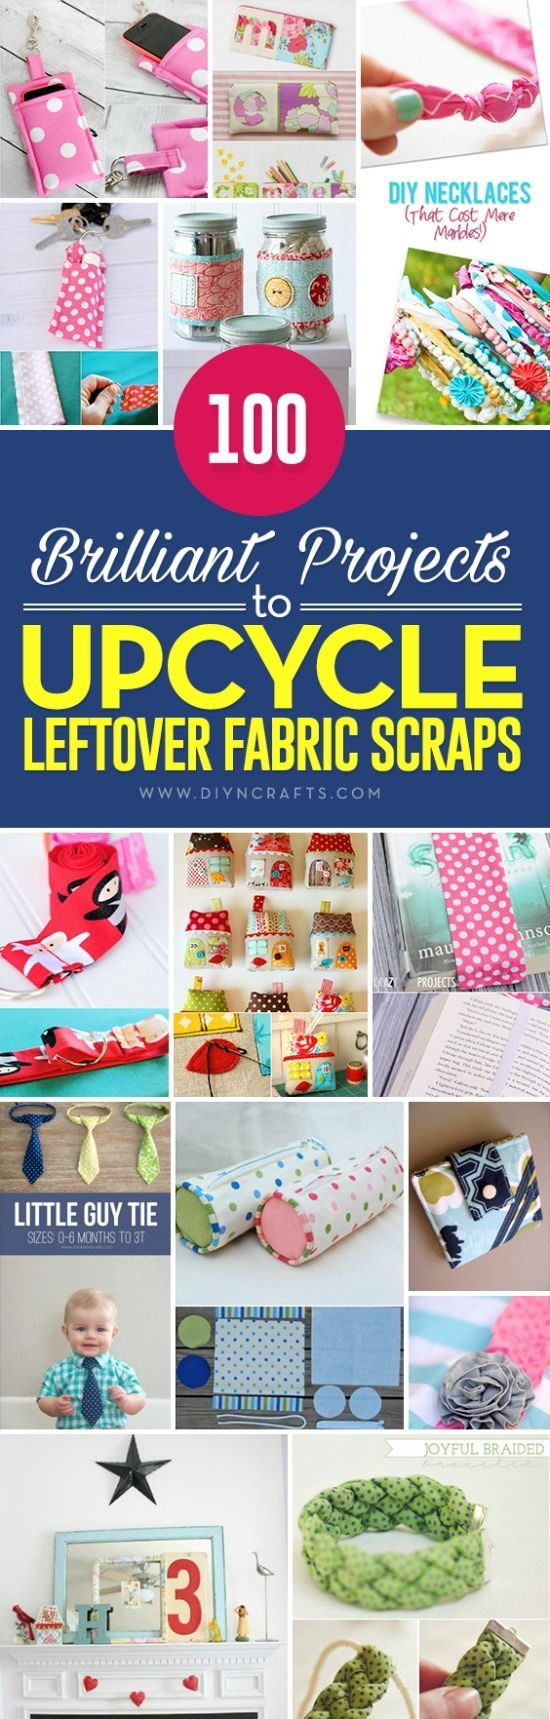 100 Brilliant Projects to Upcycle Leftover Fabric Scraps - If you love sewing, then chances are you have a few fabric scraps left over. You aren't going to always have the perfect amount of fabric for a project, after all. If you've often wondered what to